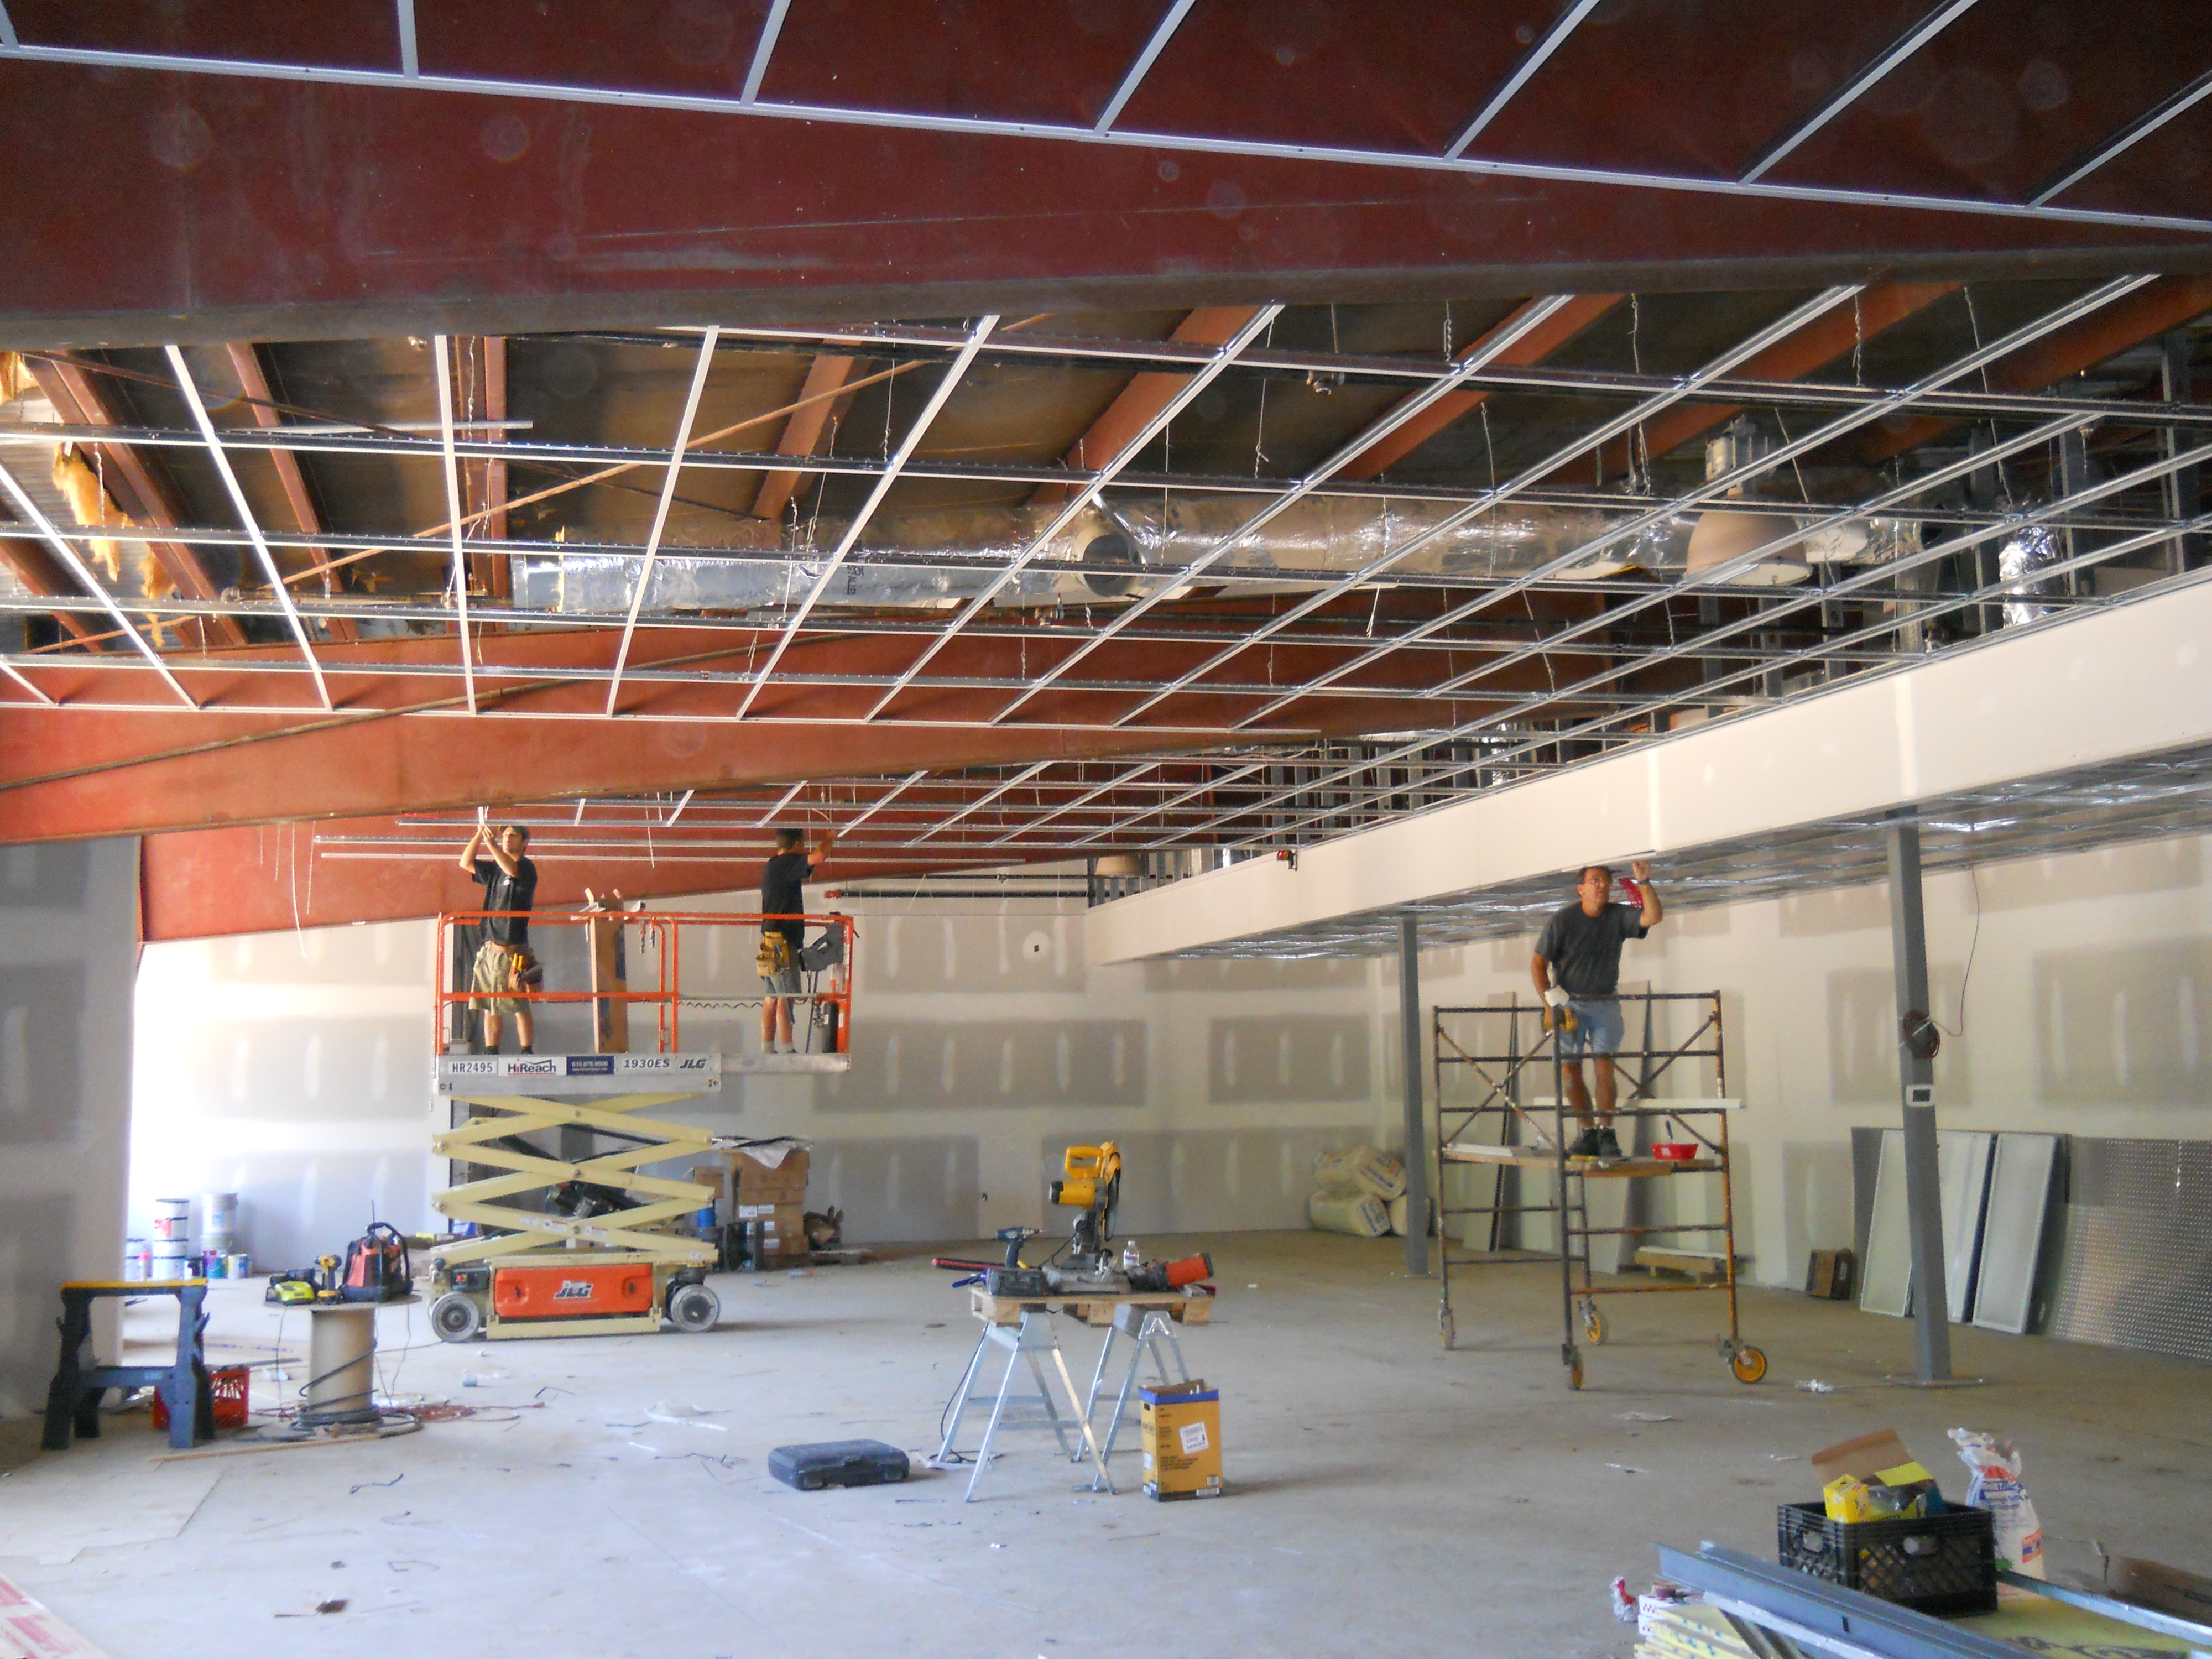 Accoustical Ceilings and Drywall